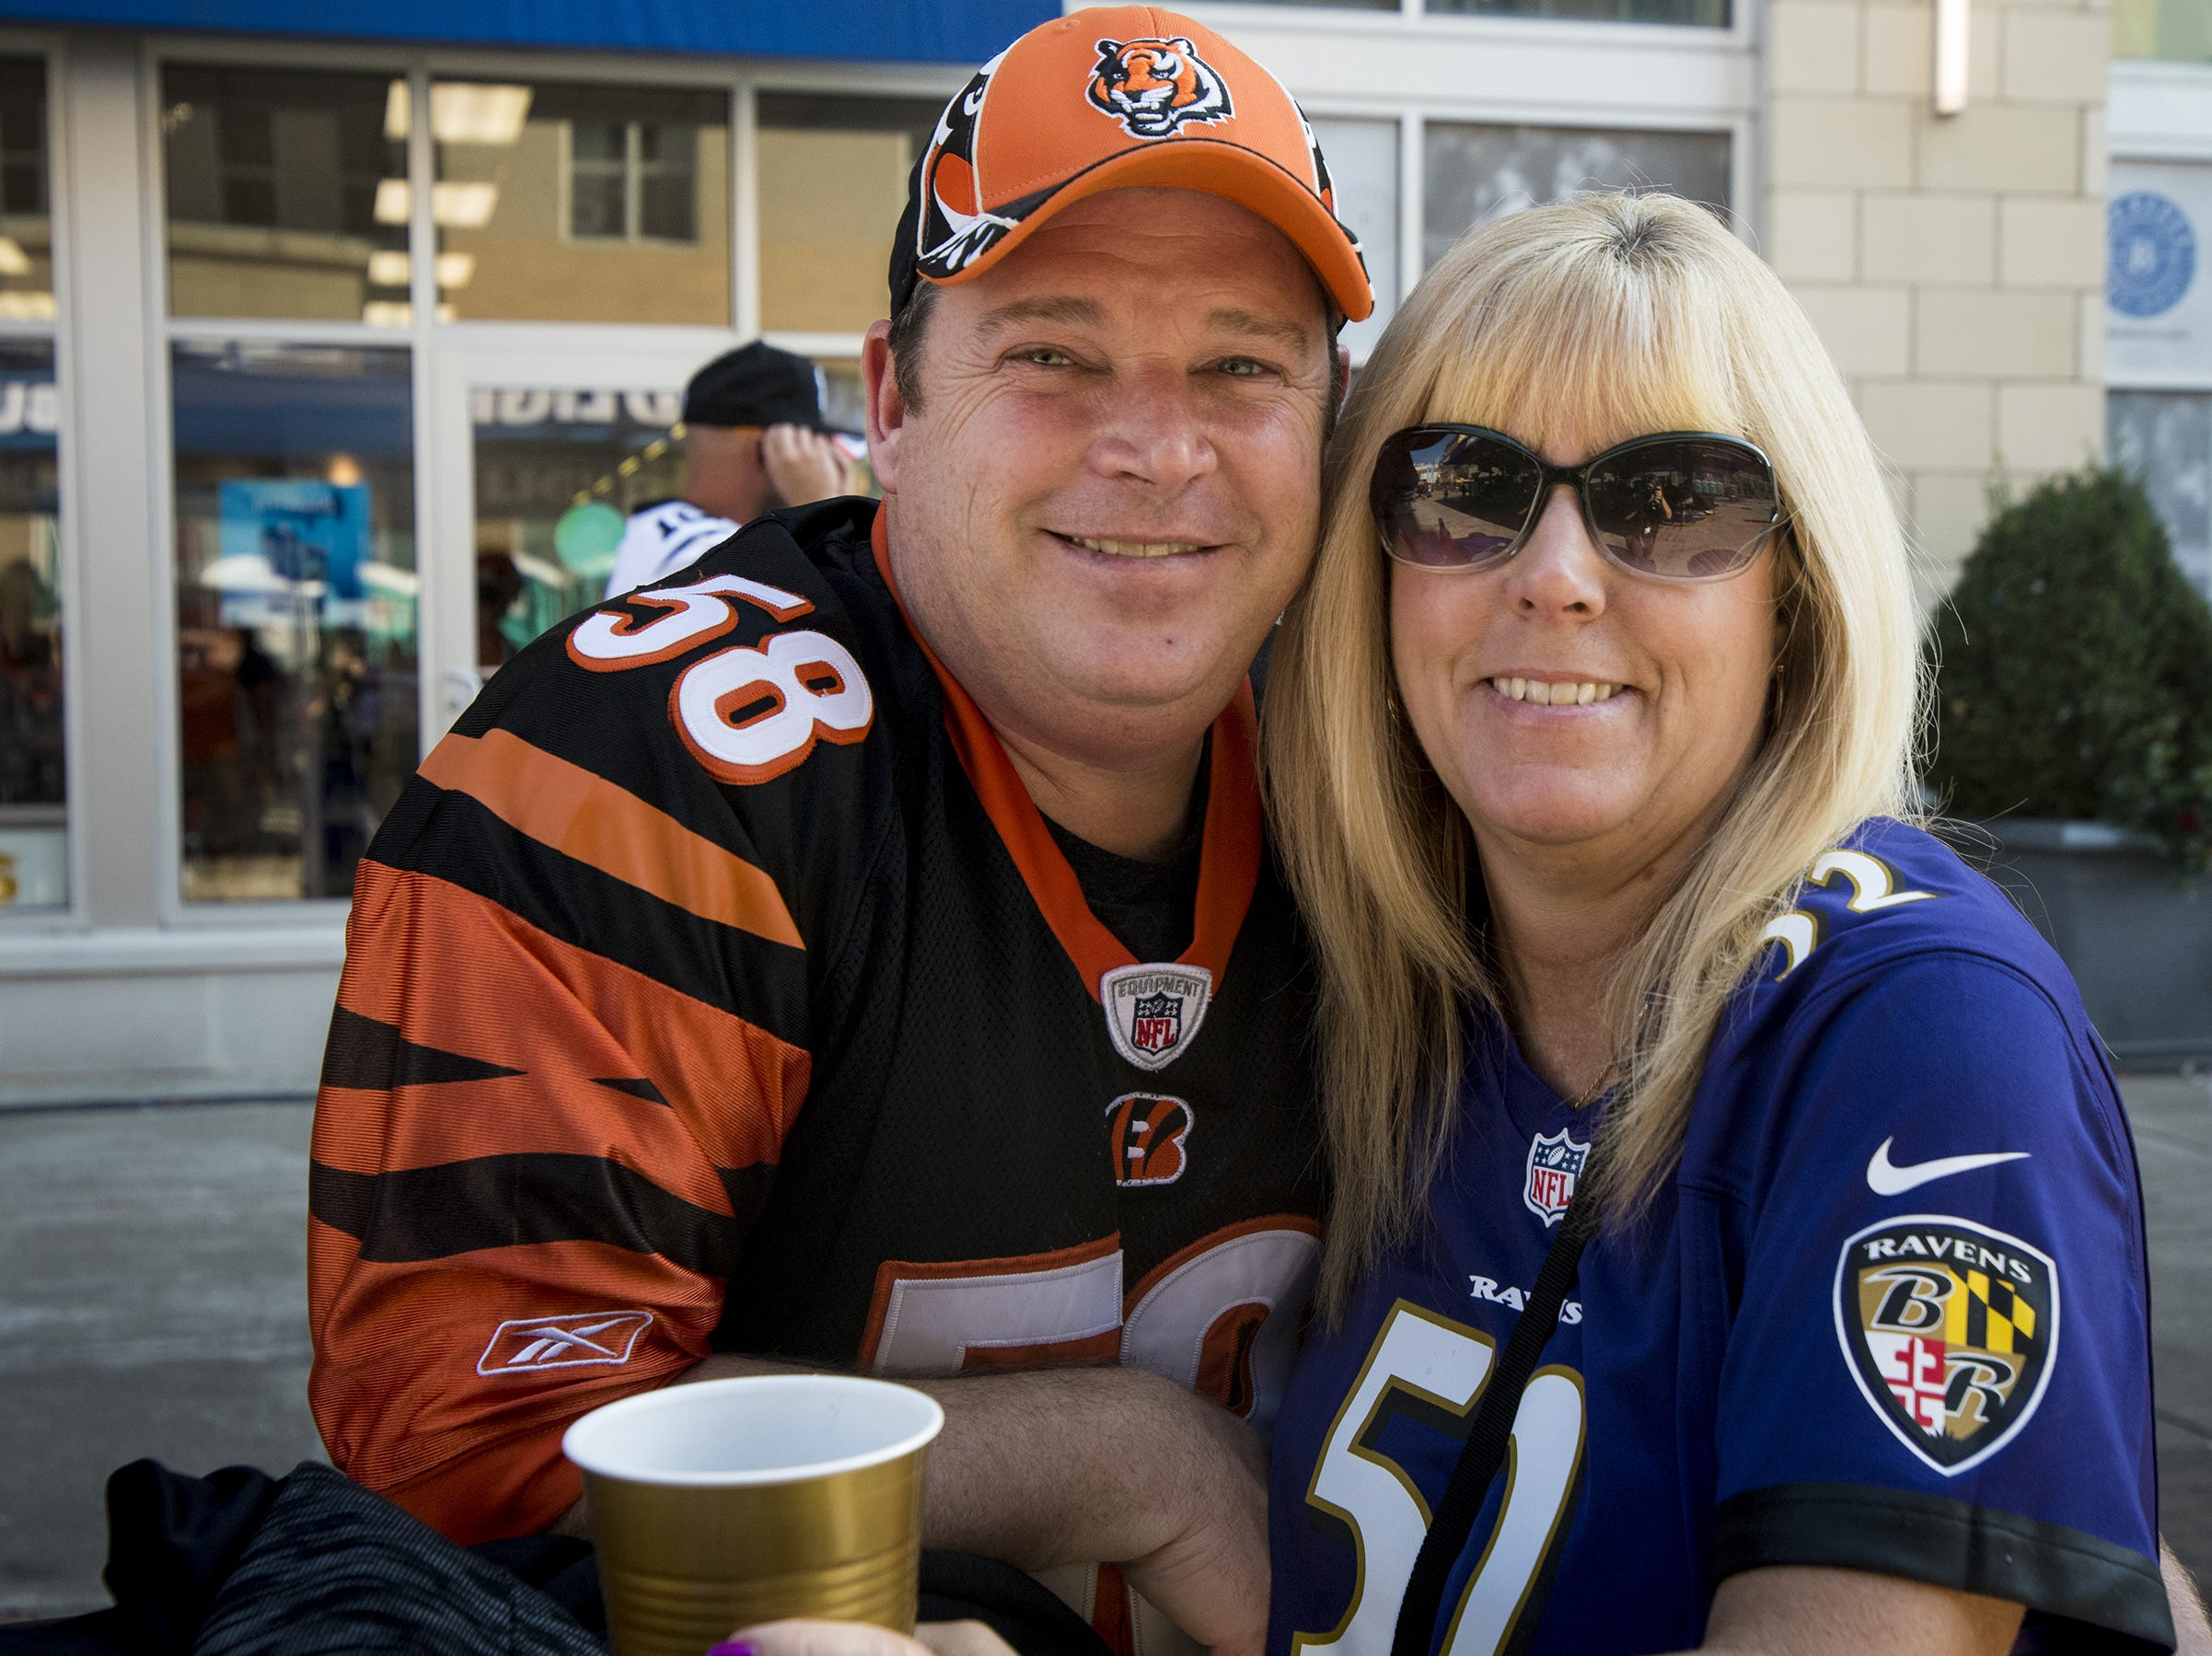 Drew and Tane Smith of Springboro hang out in the Bud Light Tailgate zone at The Bank before the Bengals game against the Baltimore Ravens Thursday, September 13, 2018 in Cincinnati, Ohio.